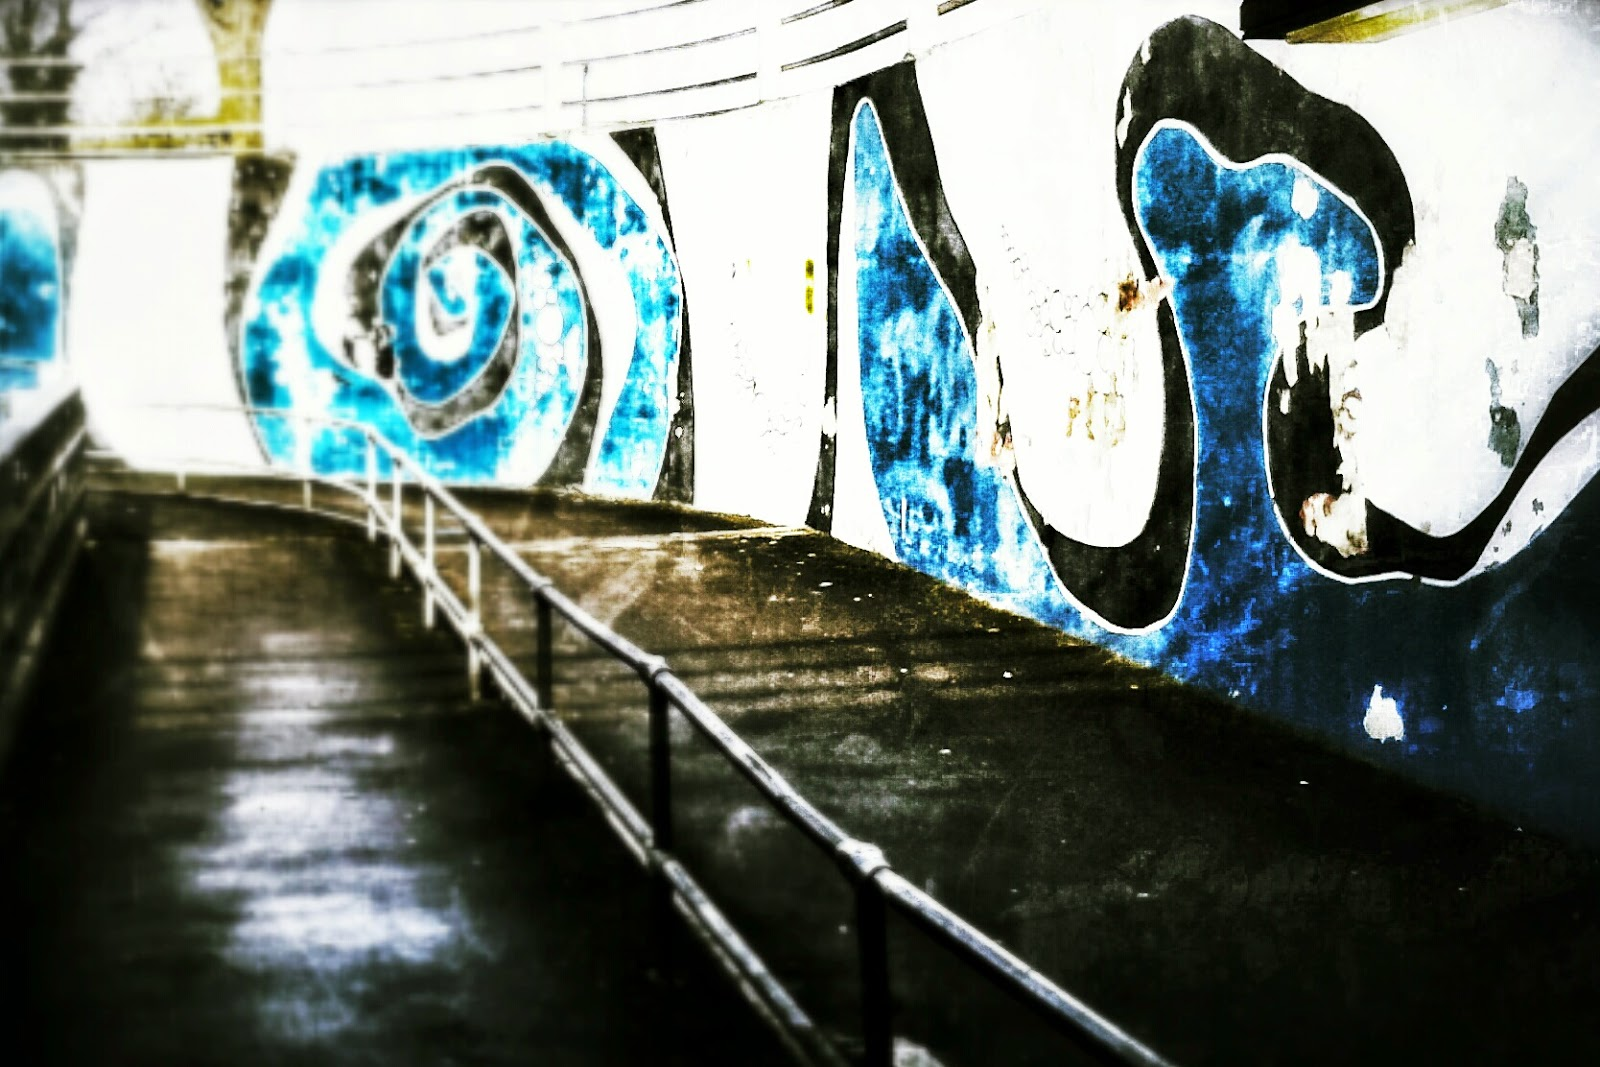 Project 365 day 69 - Underpass graffiti in town // 76sunflowers